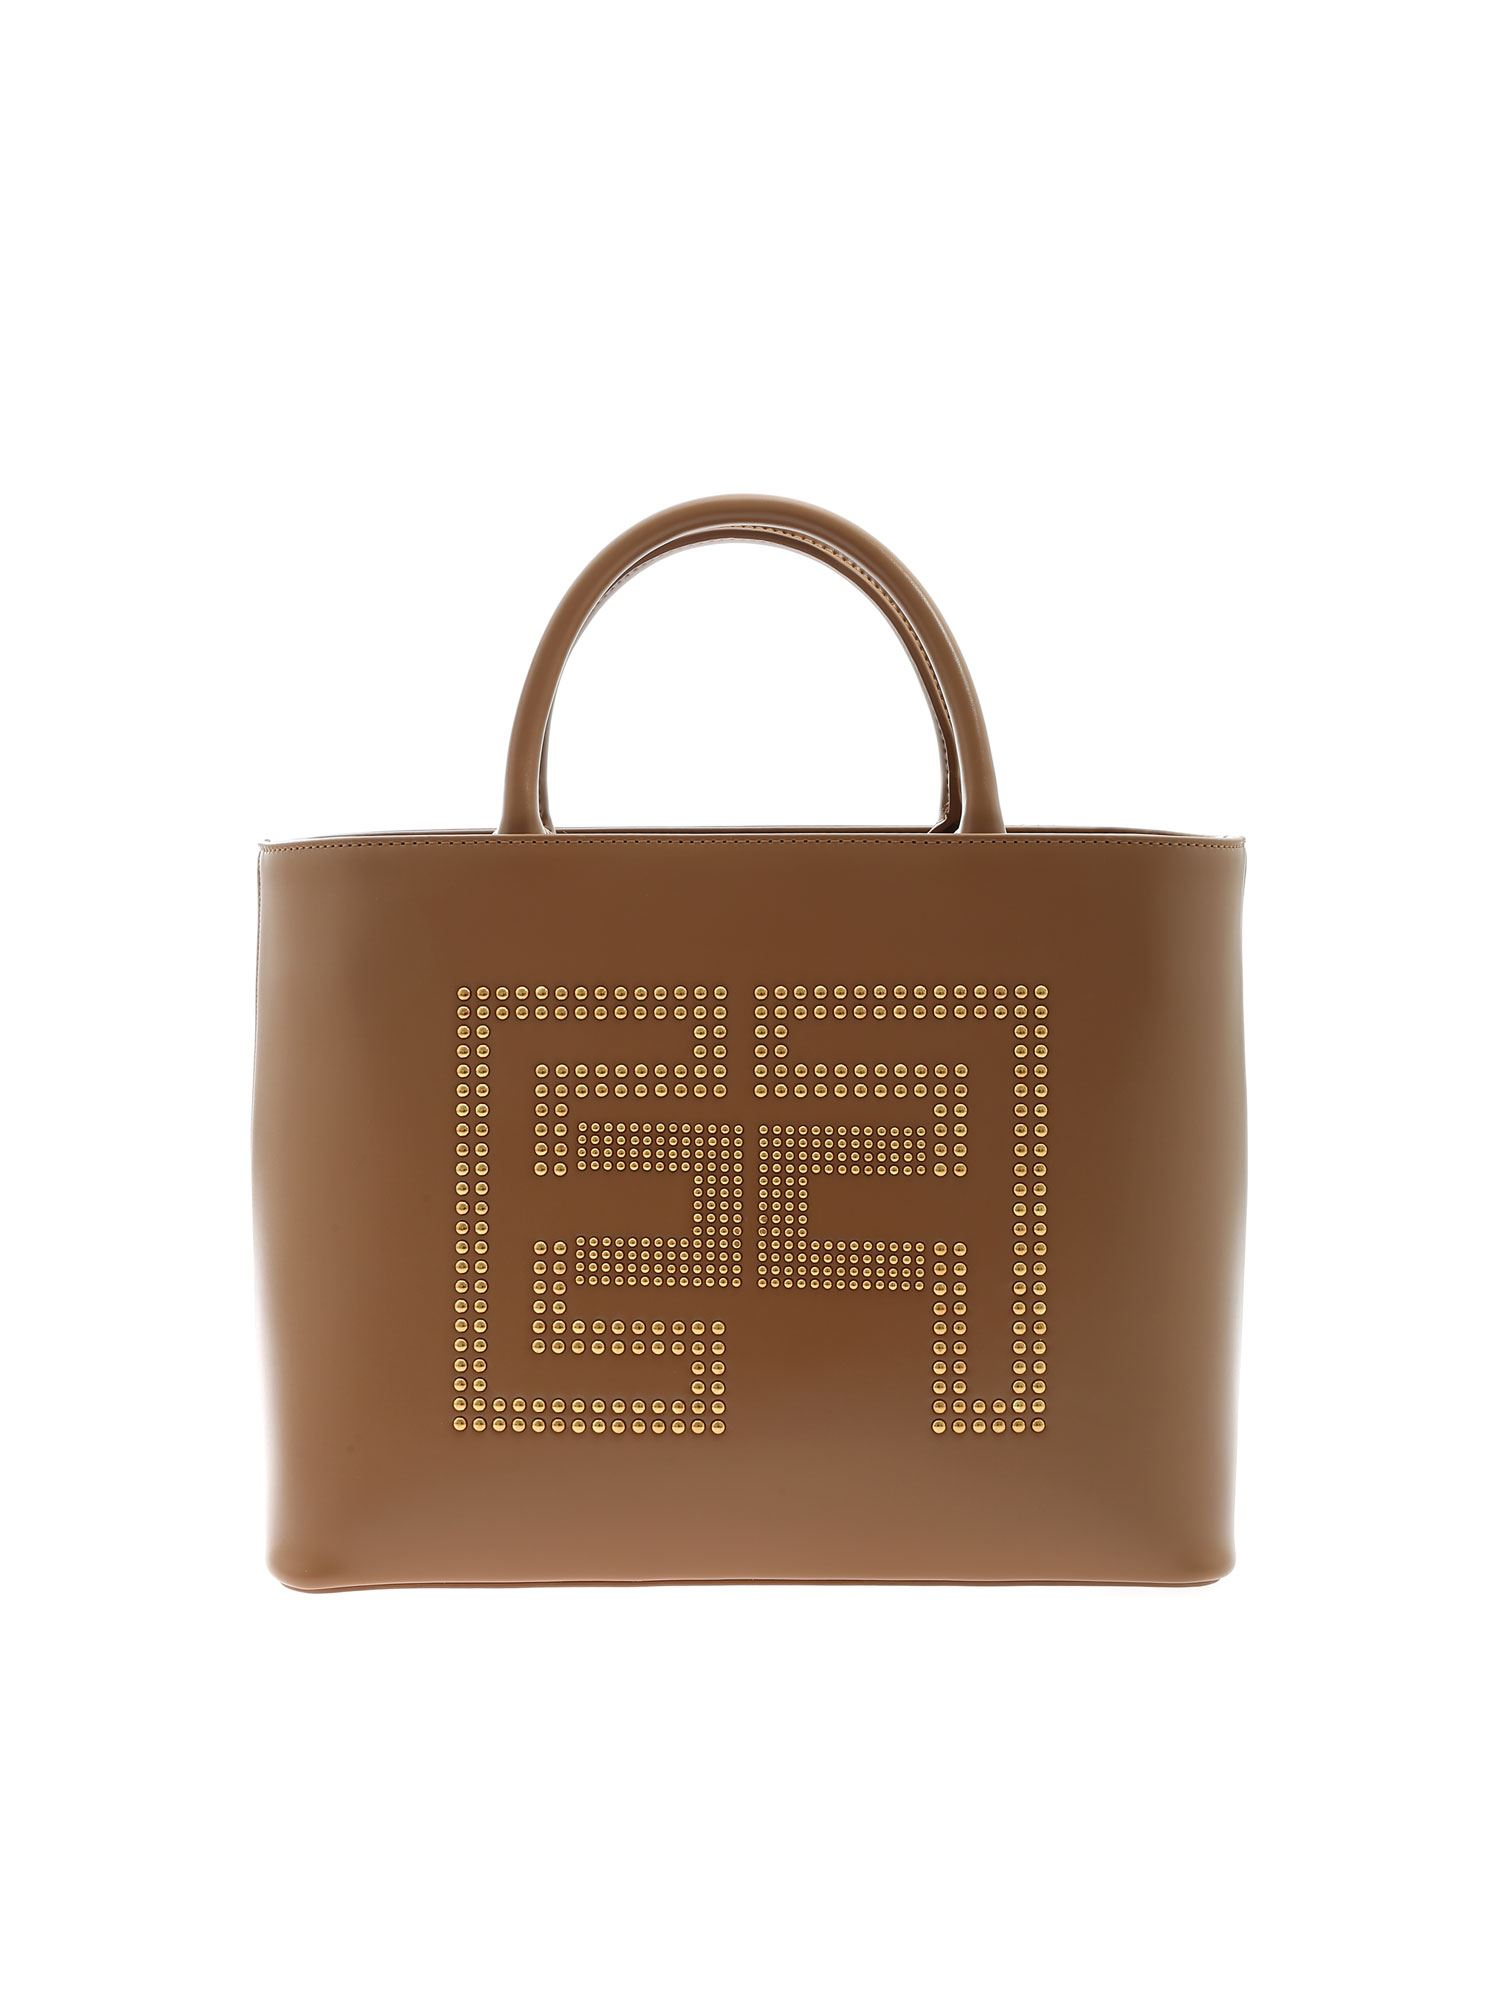 ELISABETTA FRANCHI LOGO HANDBAG IN BROWN